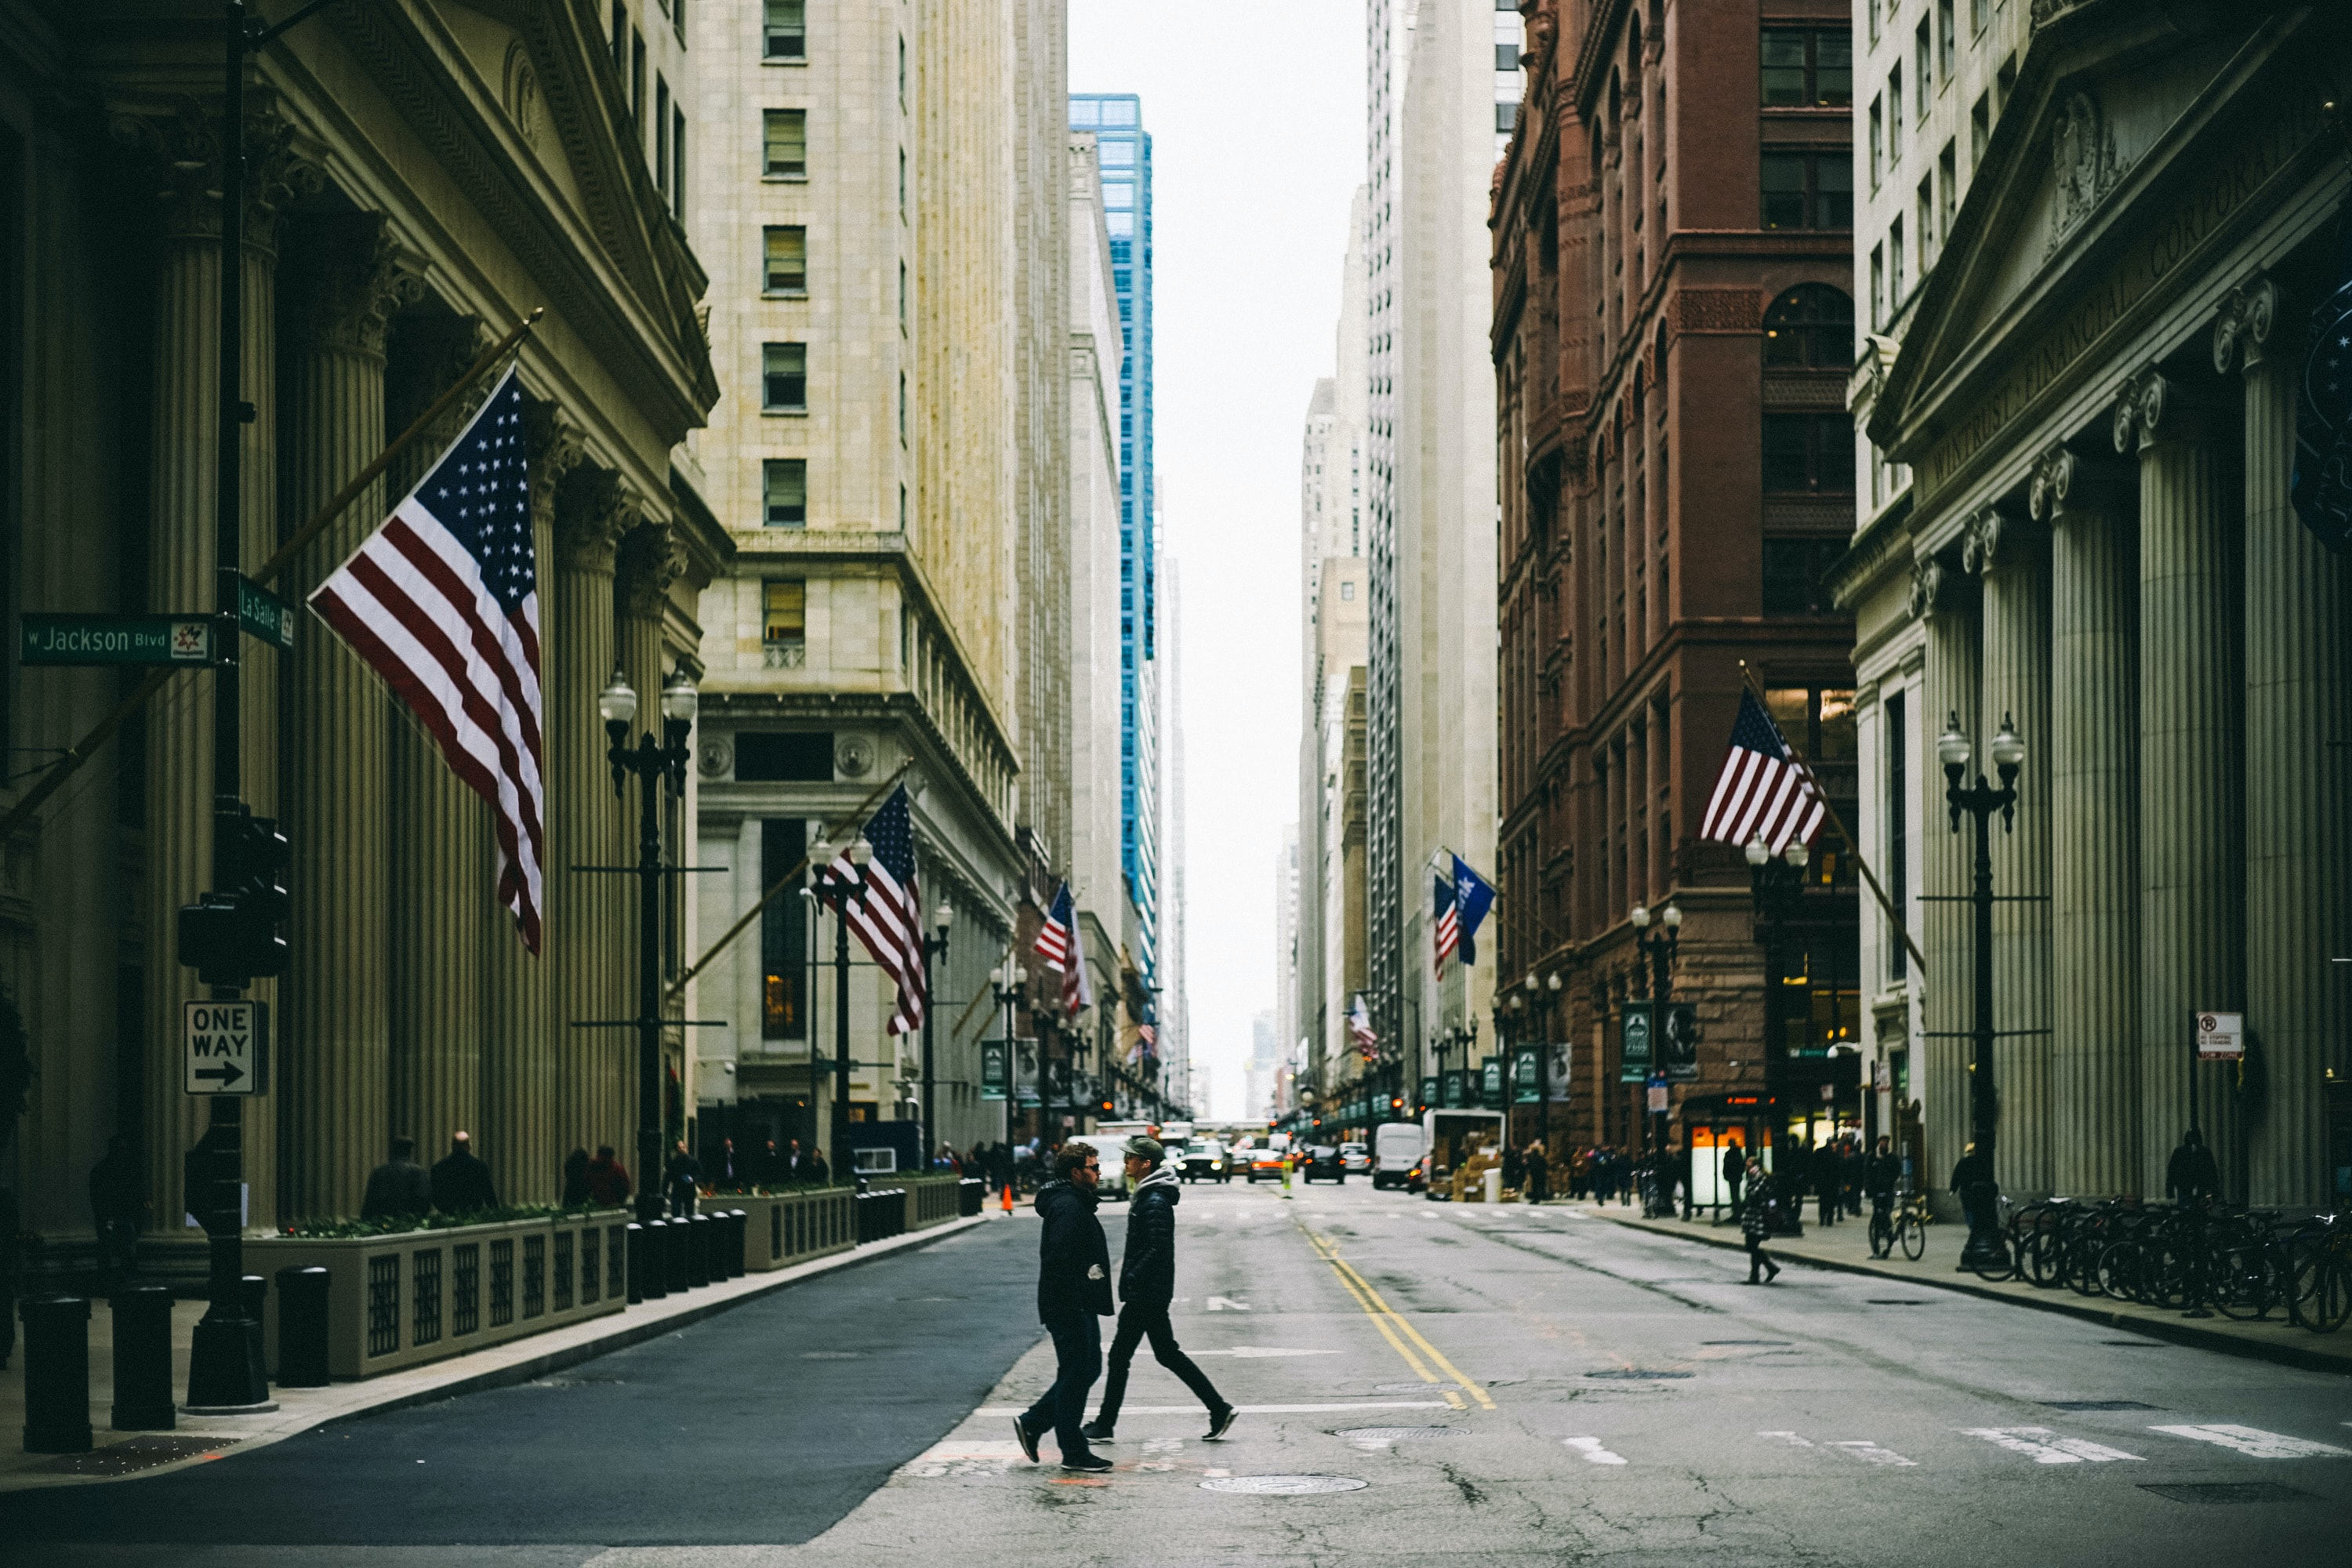 people walking on street near flag of U.S. America